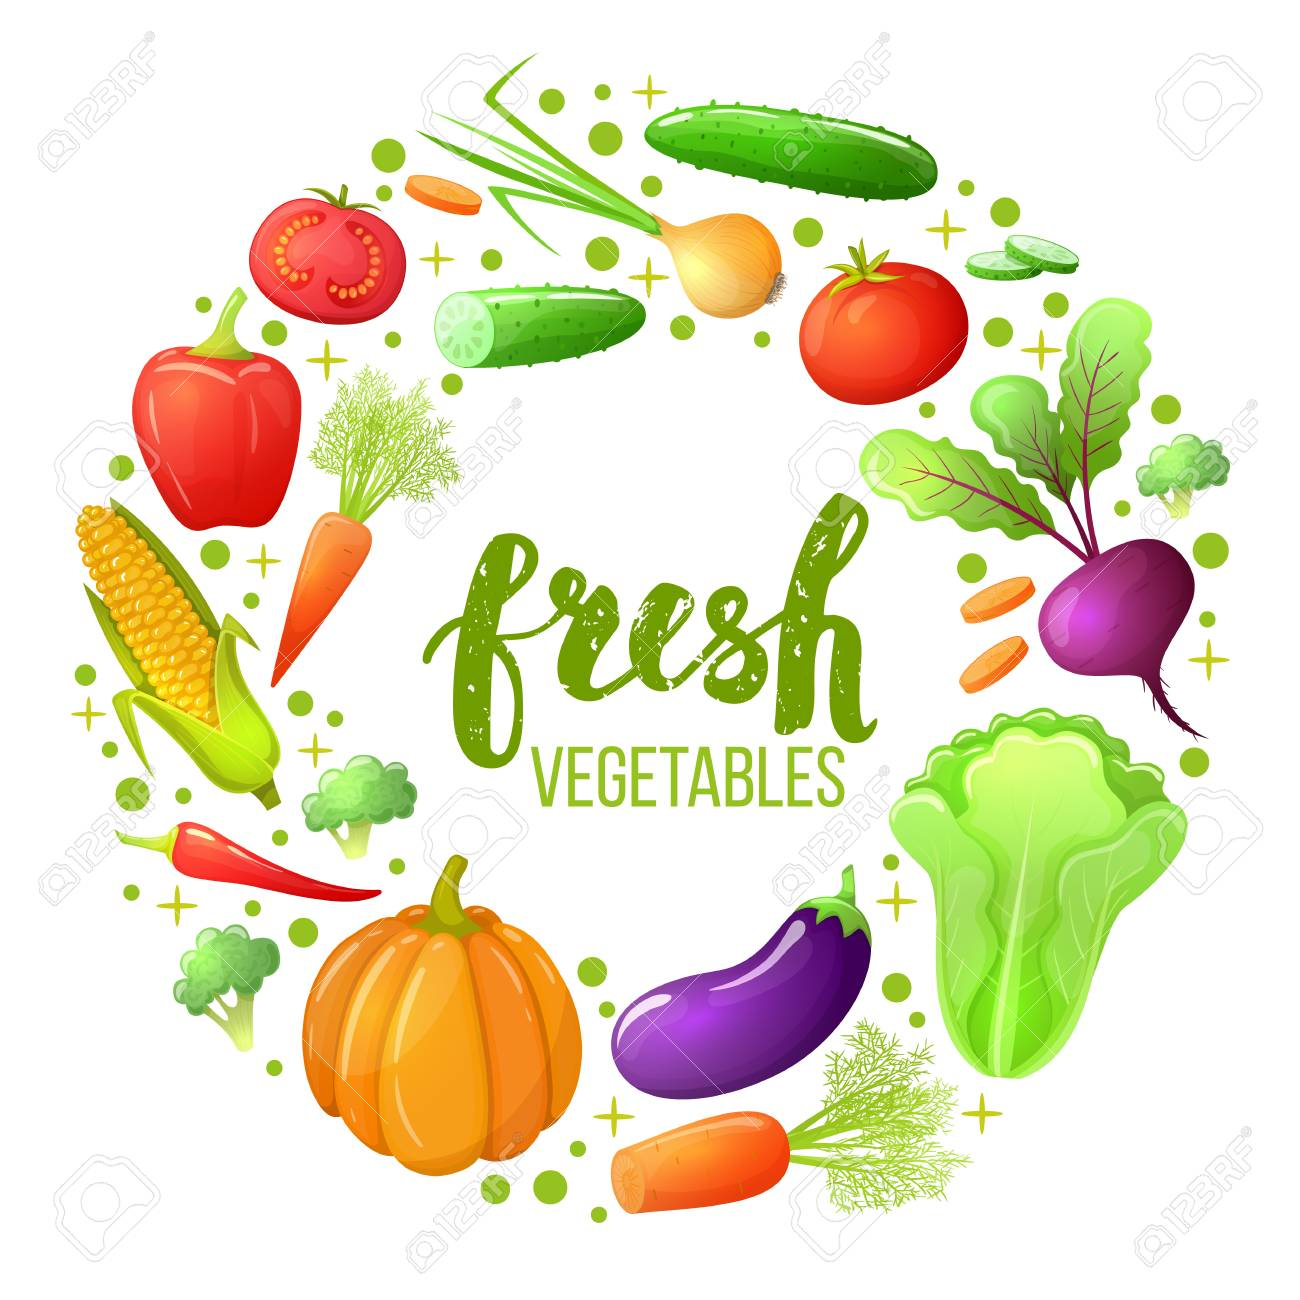 colorful sketch style set of vegetables icons eco organic fresh